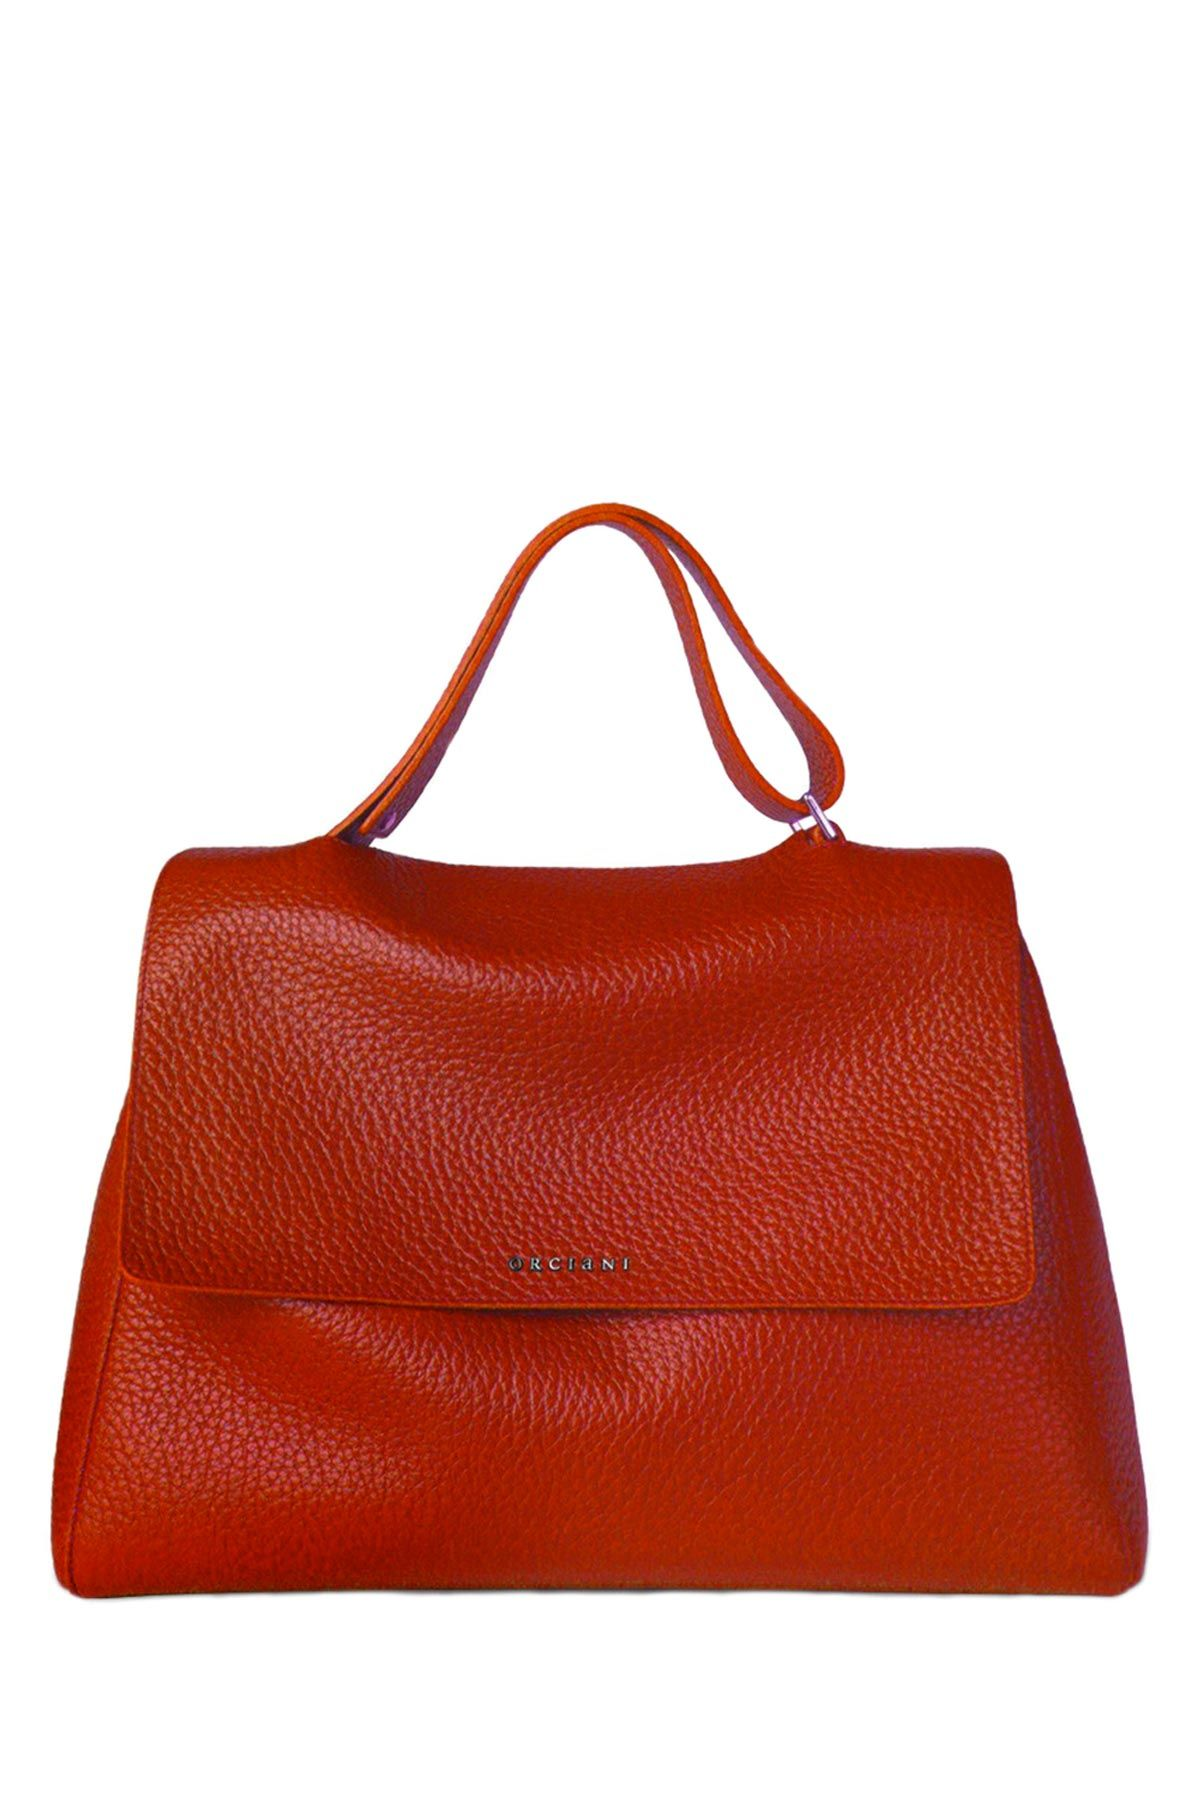 Orciani Red Shoulder Bag